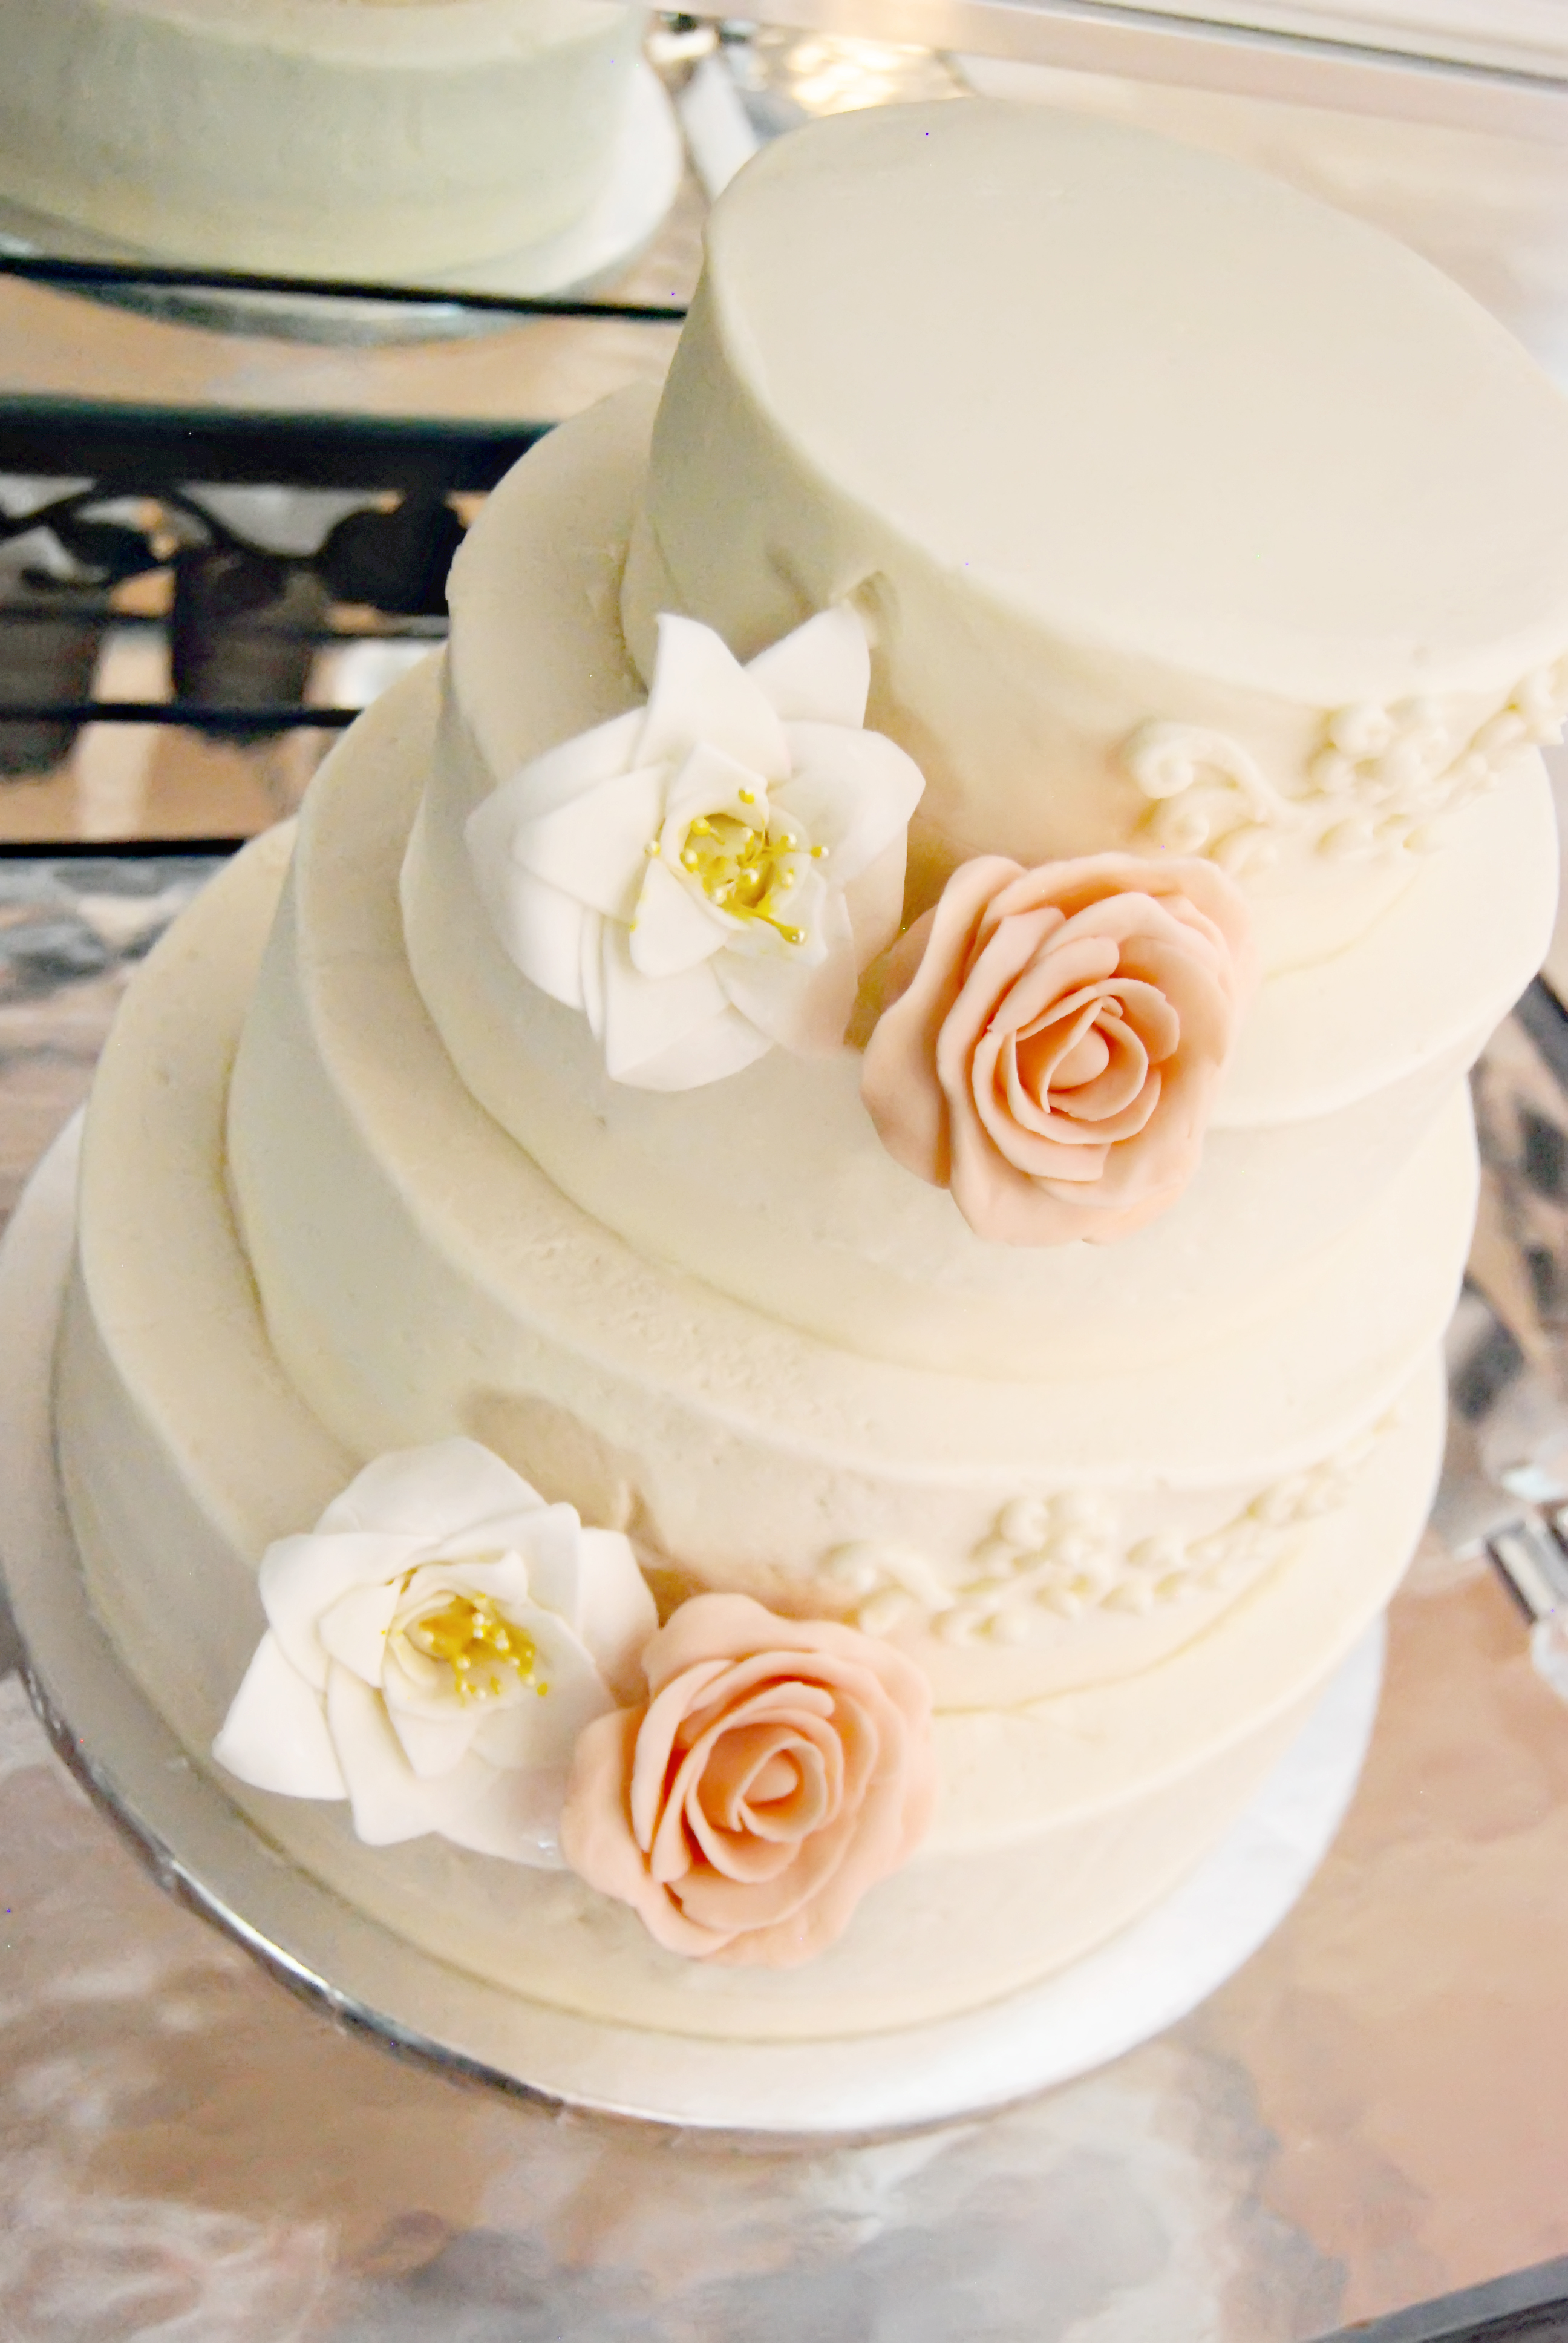 How Much To Charge Per Slice For Wedding Cake